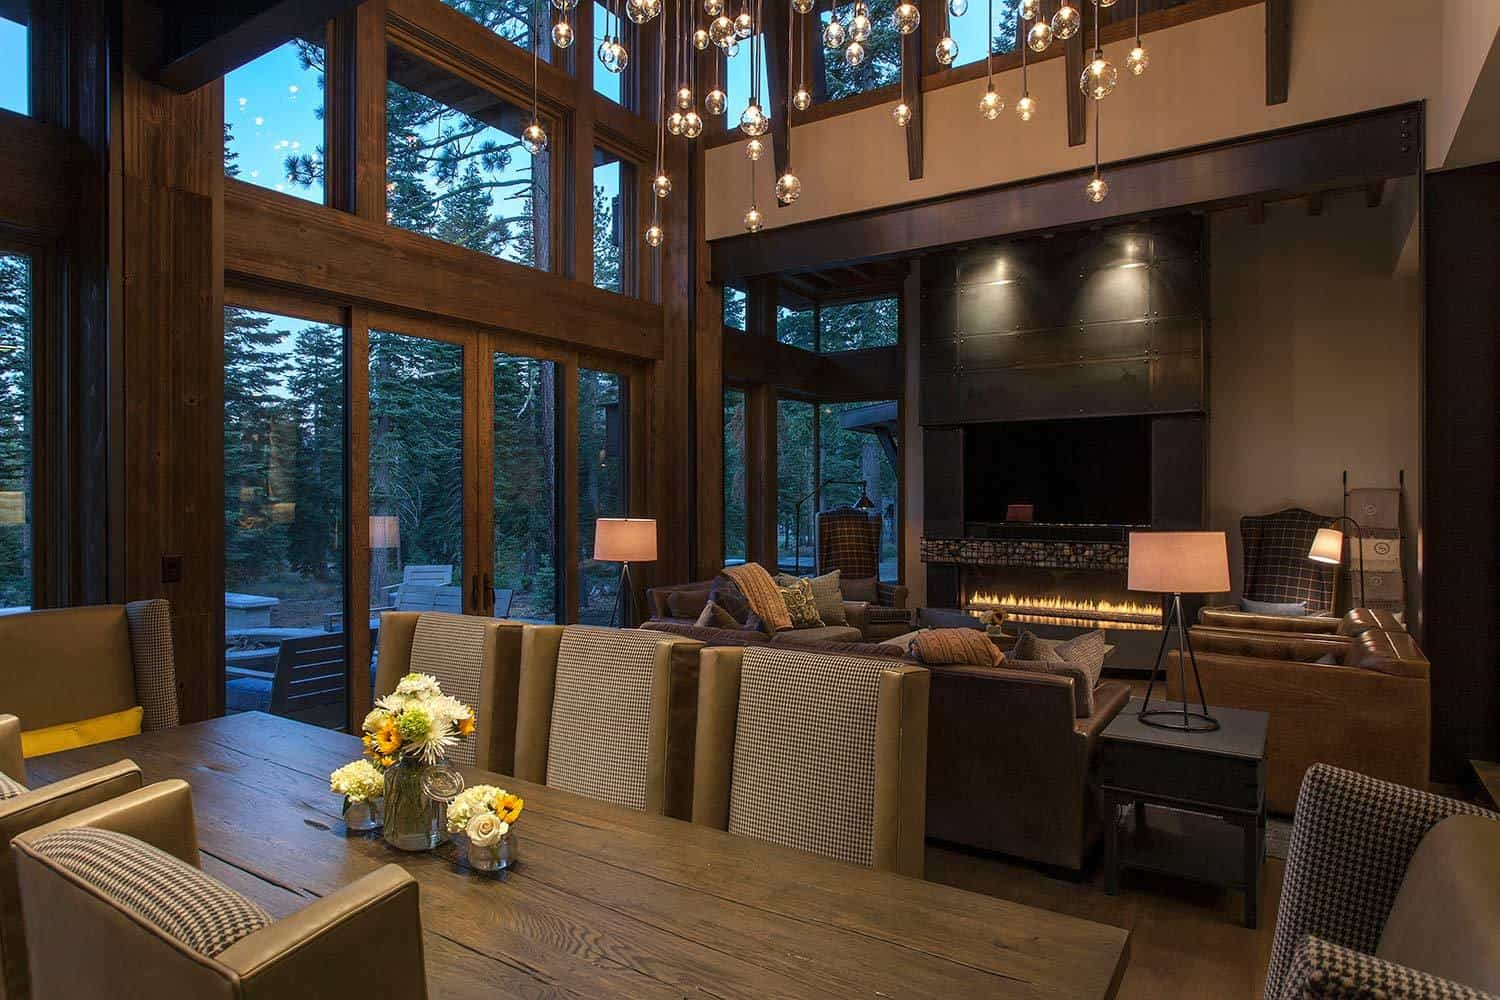 lake tahoe getaway features contemporary barn aesthetic. Black Bedroom Furniture Sets. Home Design Ideas